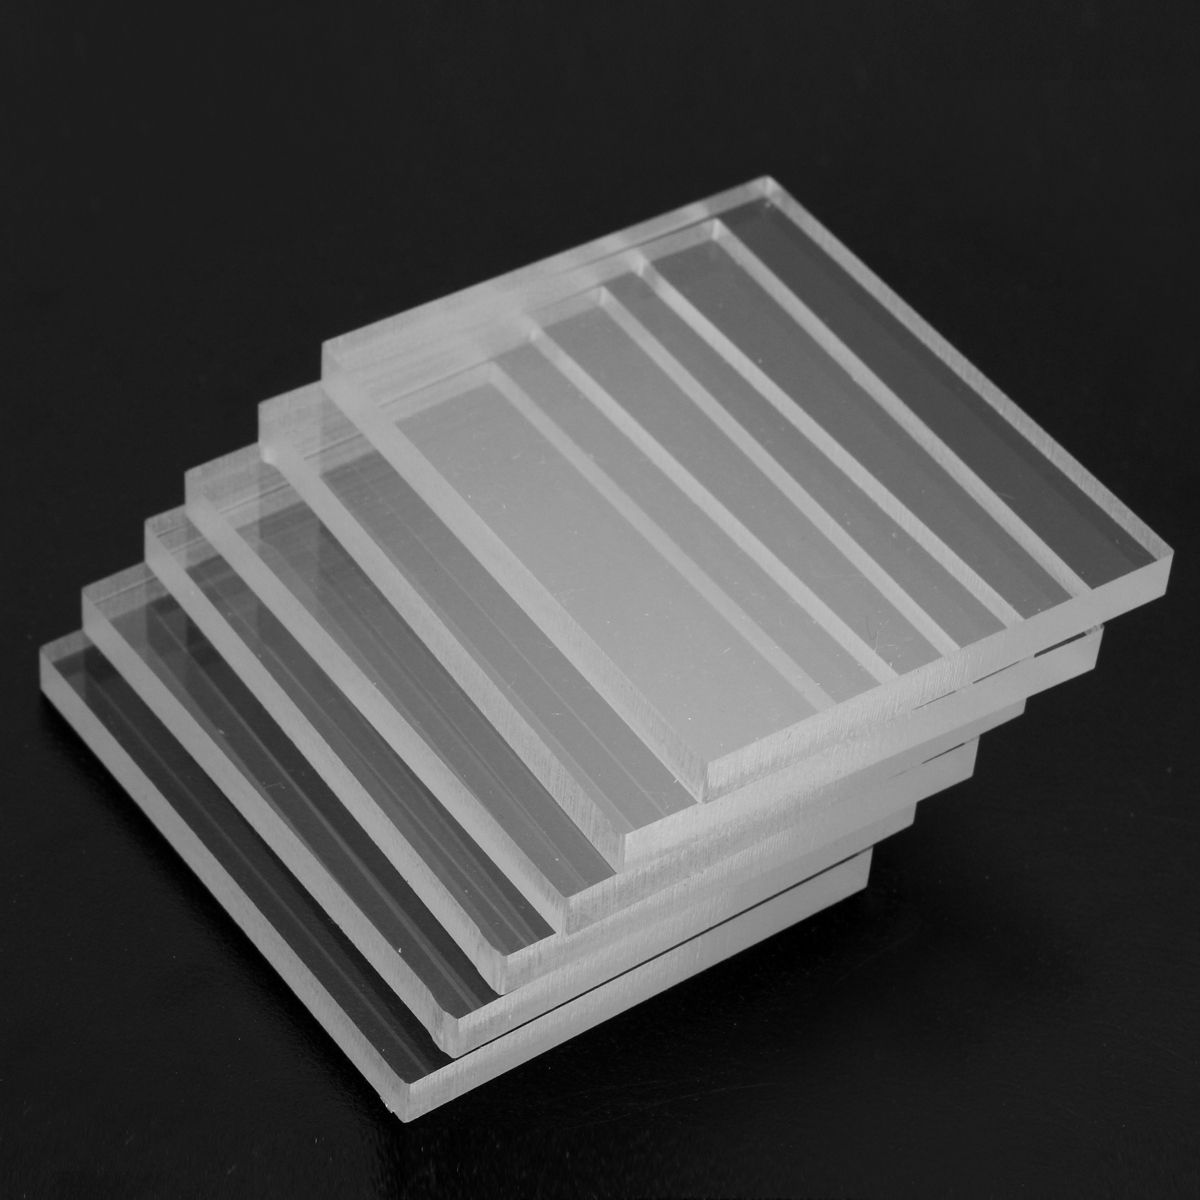 6pcs Acrylic Plexiglass Blocks Pads Card Clear For Craft Stamping 5 6x4 6x0 5cm Stamp Crafts Clear Acrylic Plexiglass